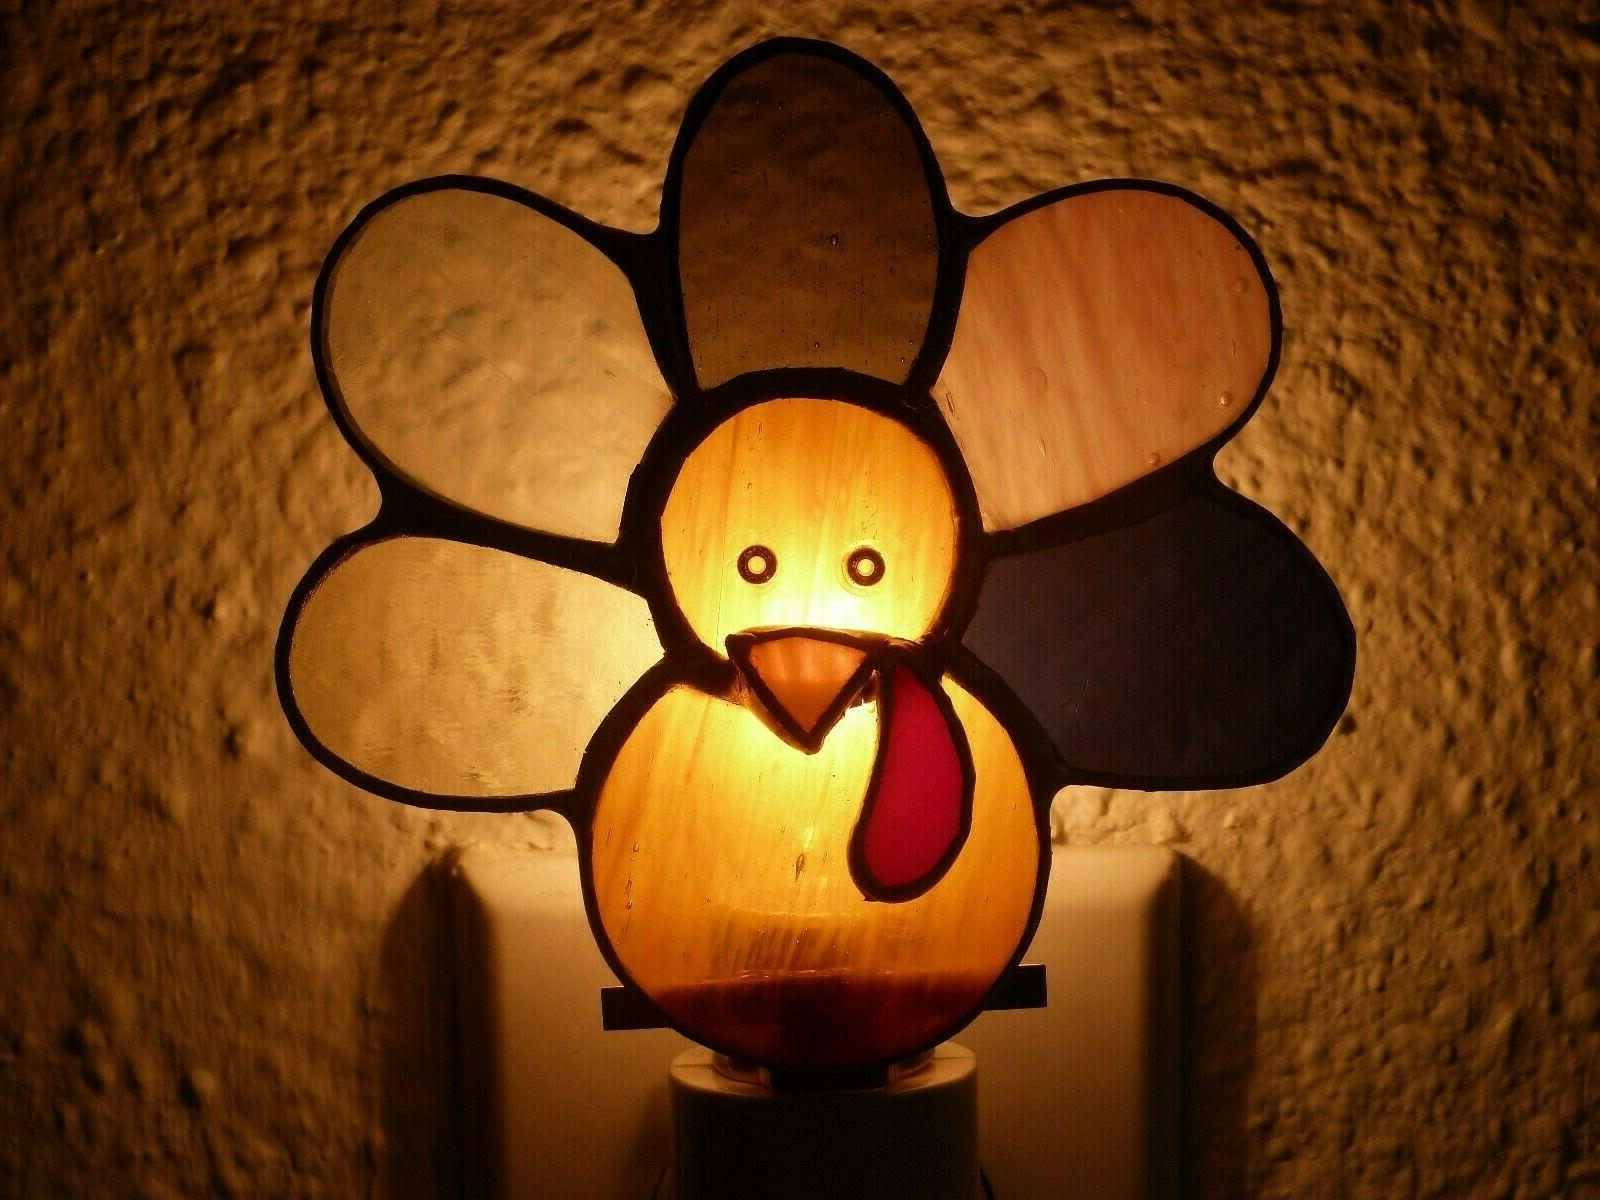 turkey night light brown stained glass plug